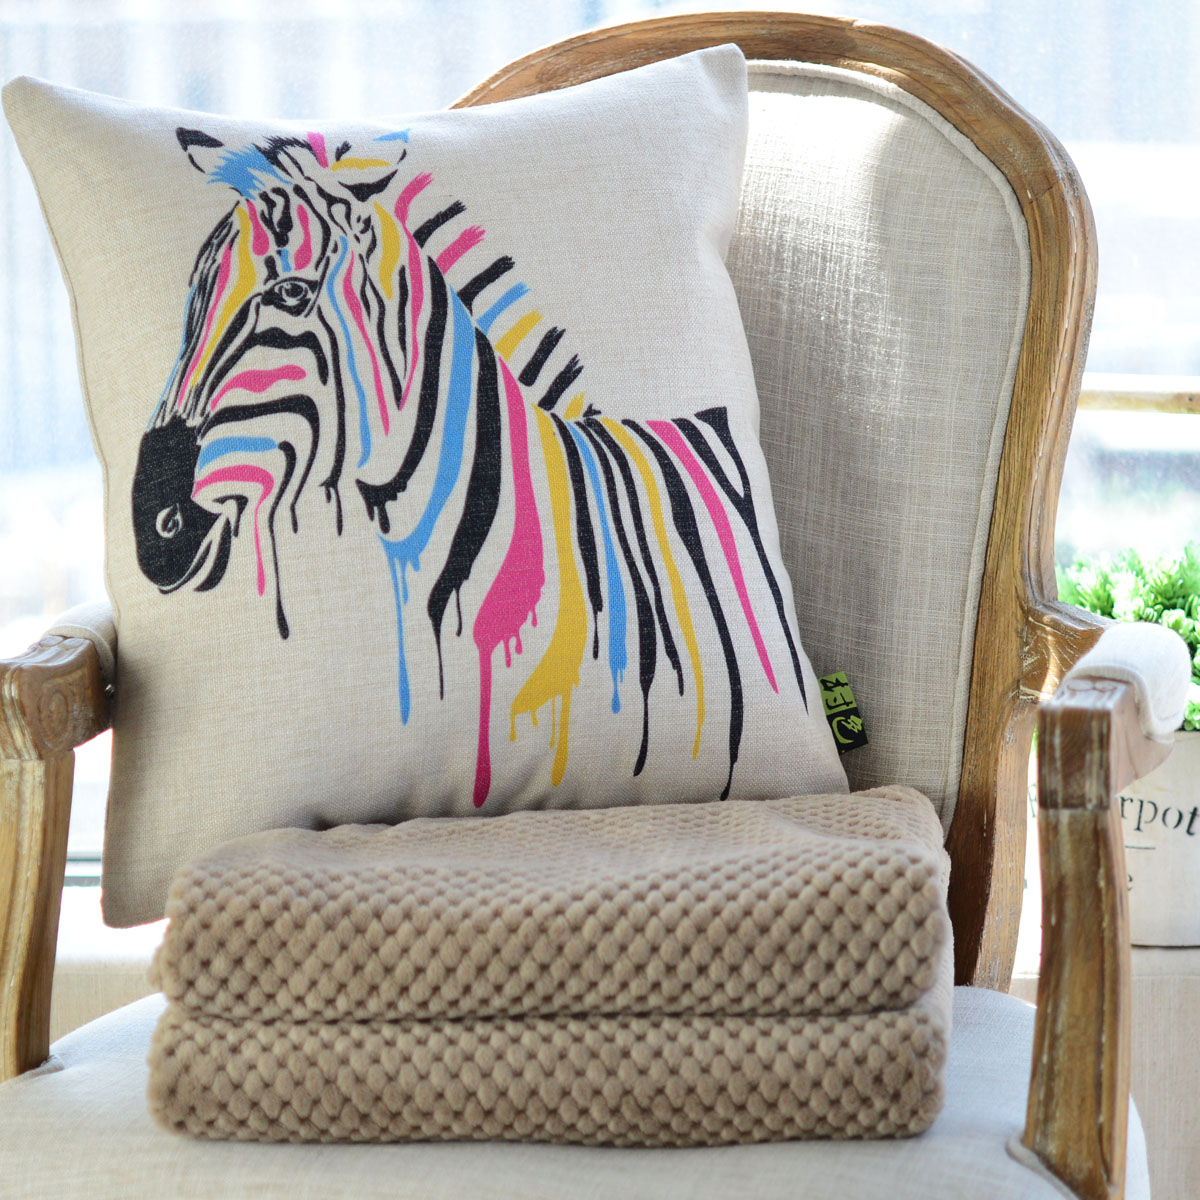 Village color cotton pillow cover cartoon creative pillow cushions are core nordic european air conditioning is cool in summer blanket zebra